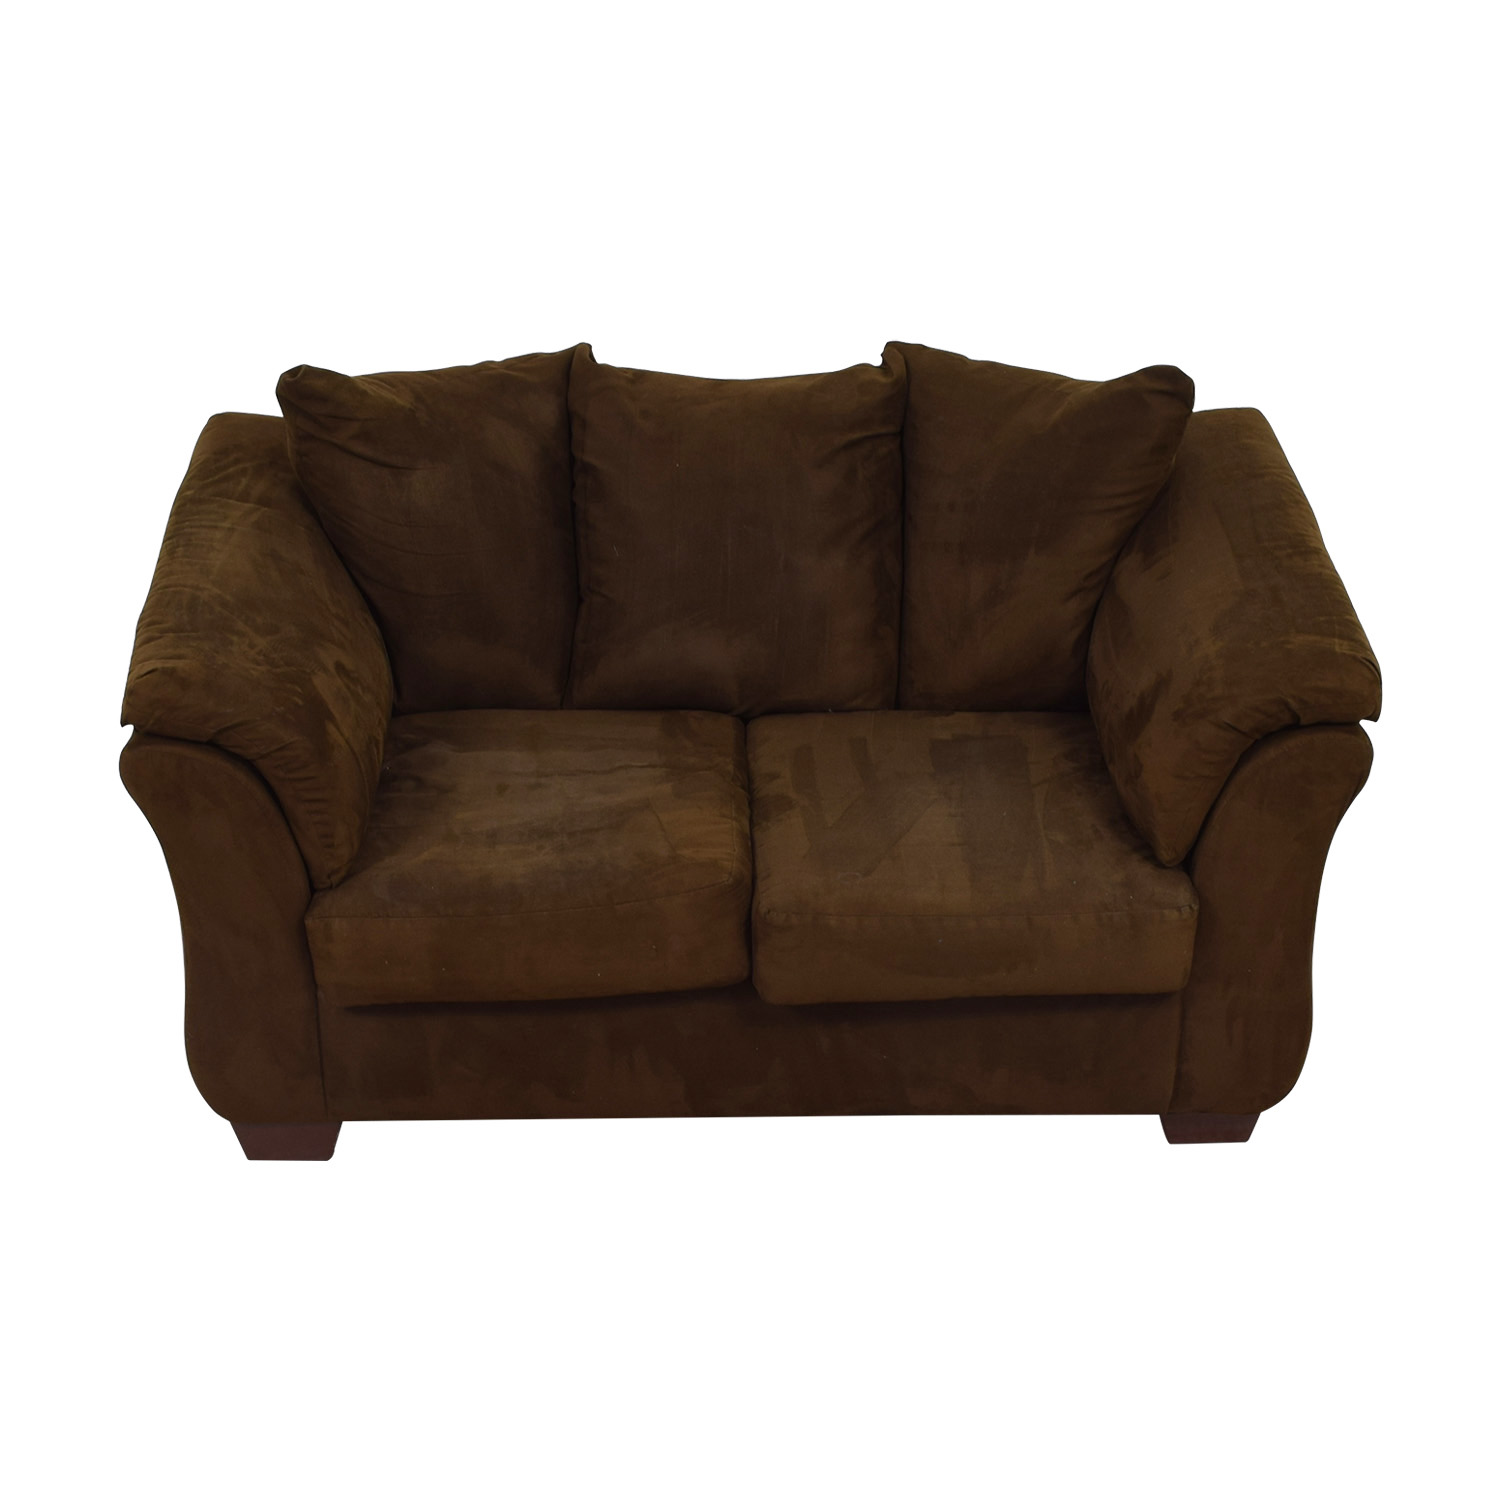 Ashley Furniture Ashley Furniture Two- Cushion Brown Loveseat nyc